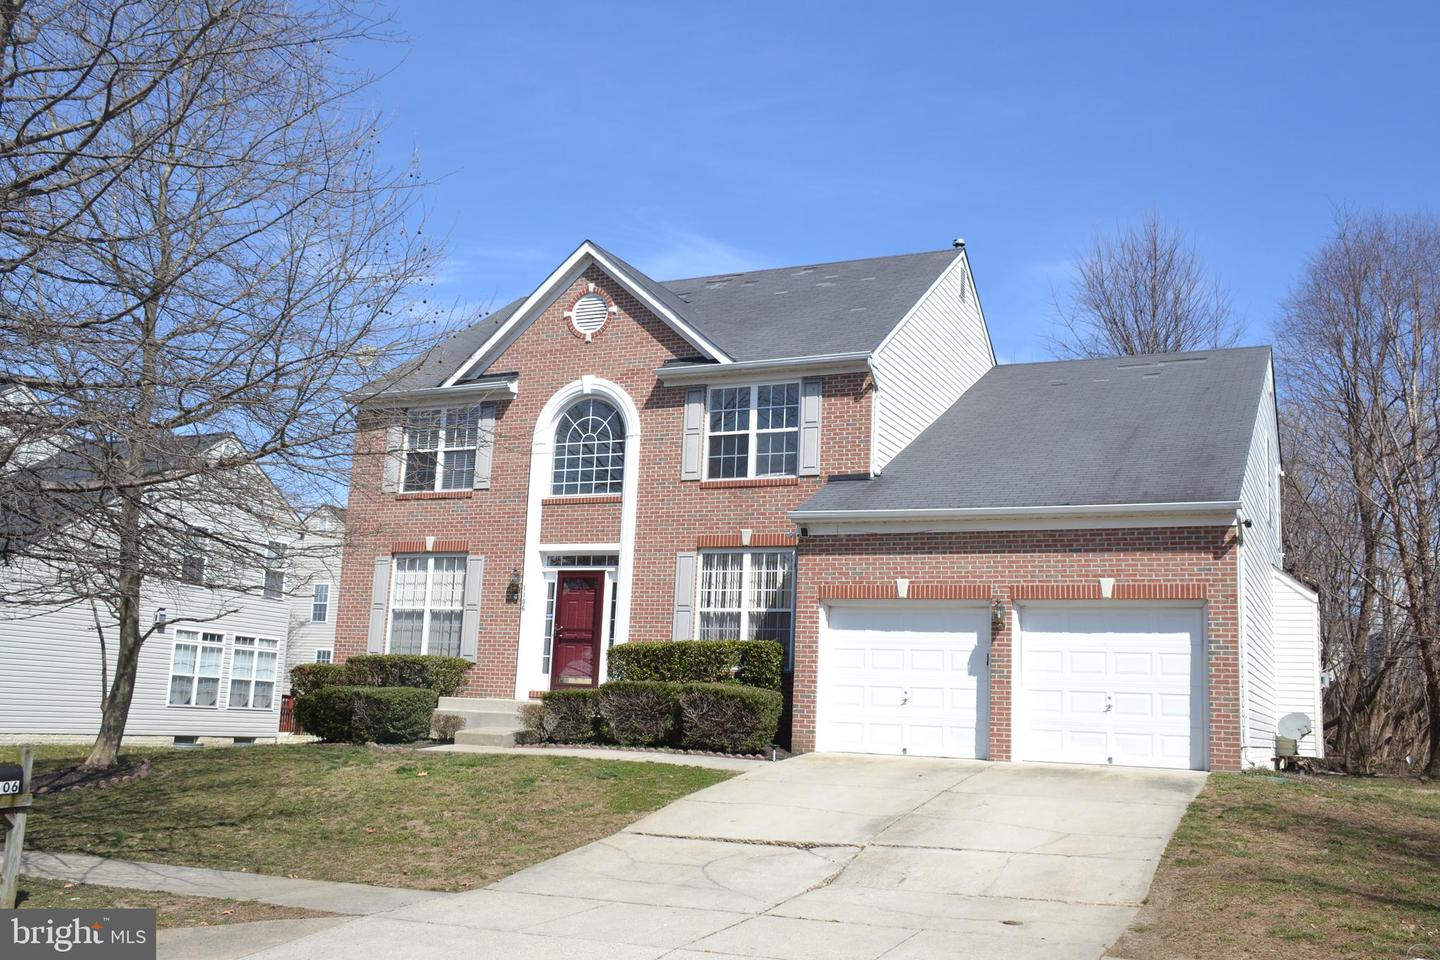 1106 WHISTLING DUCK DRIVE, UPPER MARLBORO, Maryland